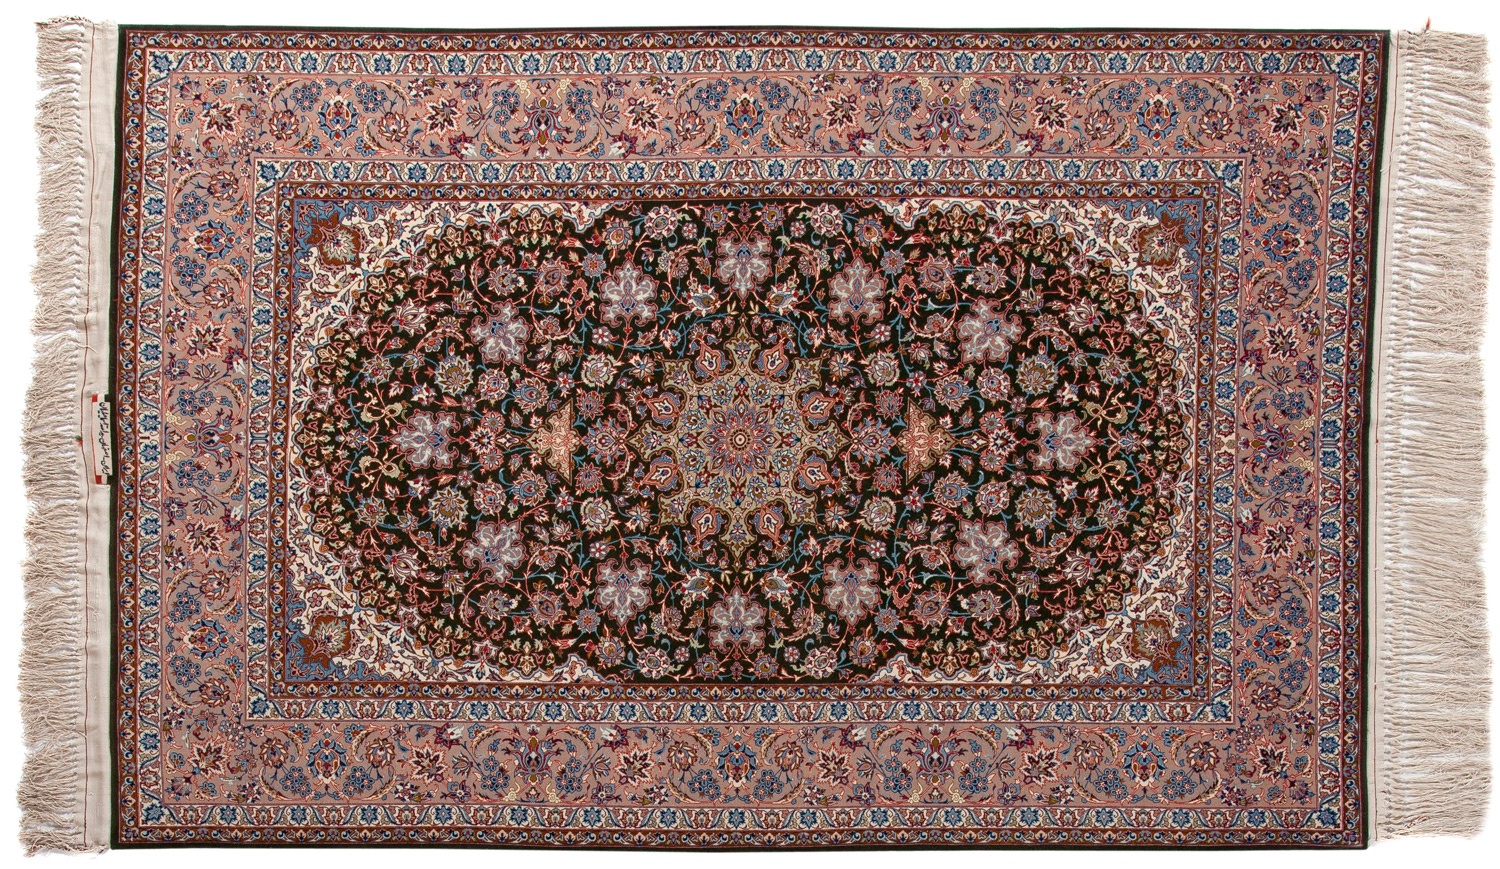 Signature Wool/Silk Persian Rug